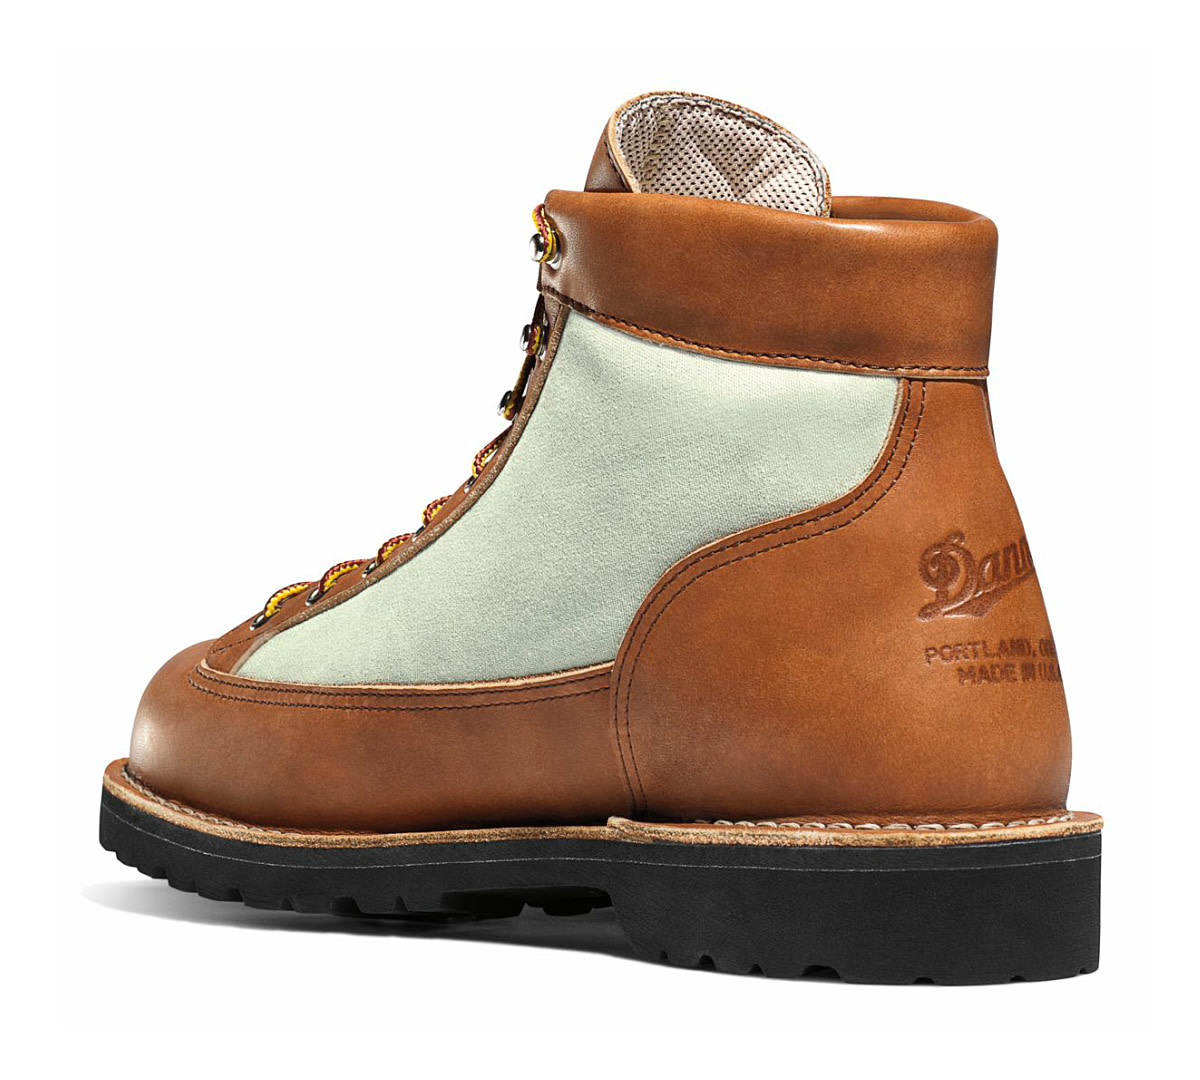 beckel-canvas-products-x-danner-light-beckel-boot-collection-11